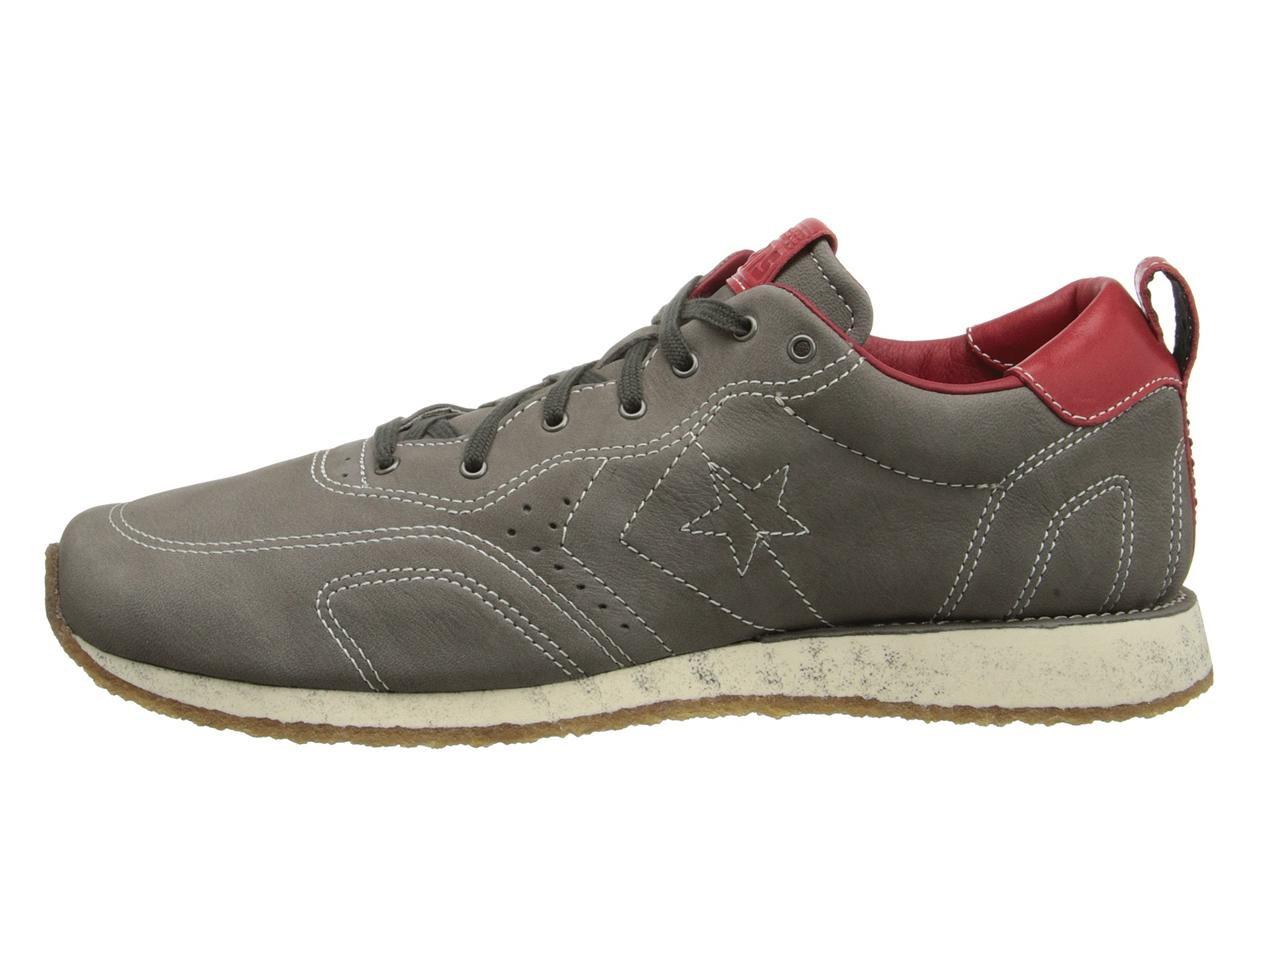 CONVERSE X BY JOHN VARVATOS RACER OX CHARCOAL LEATHER